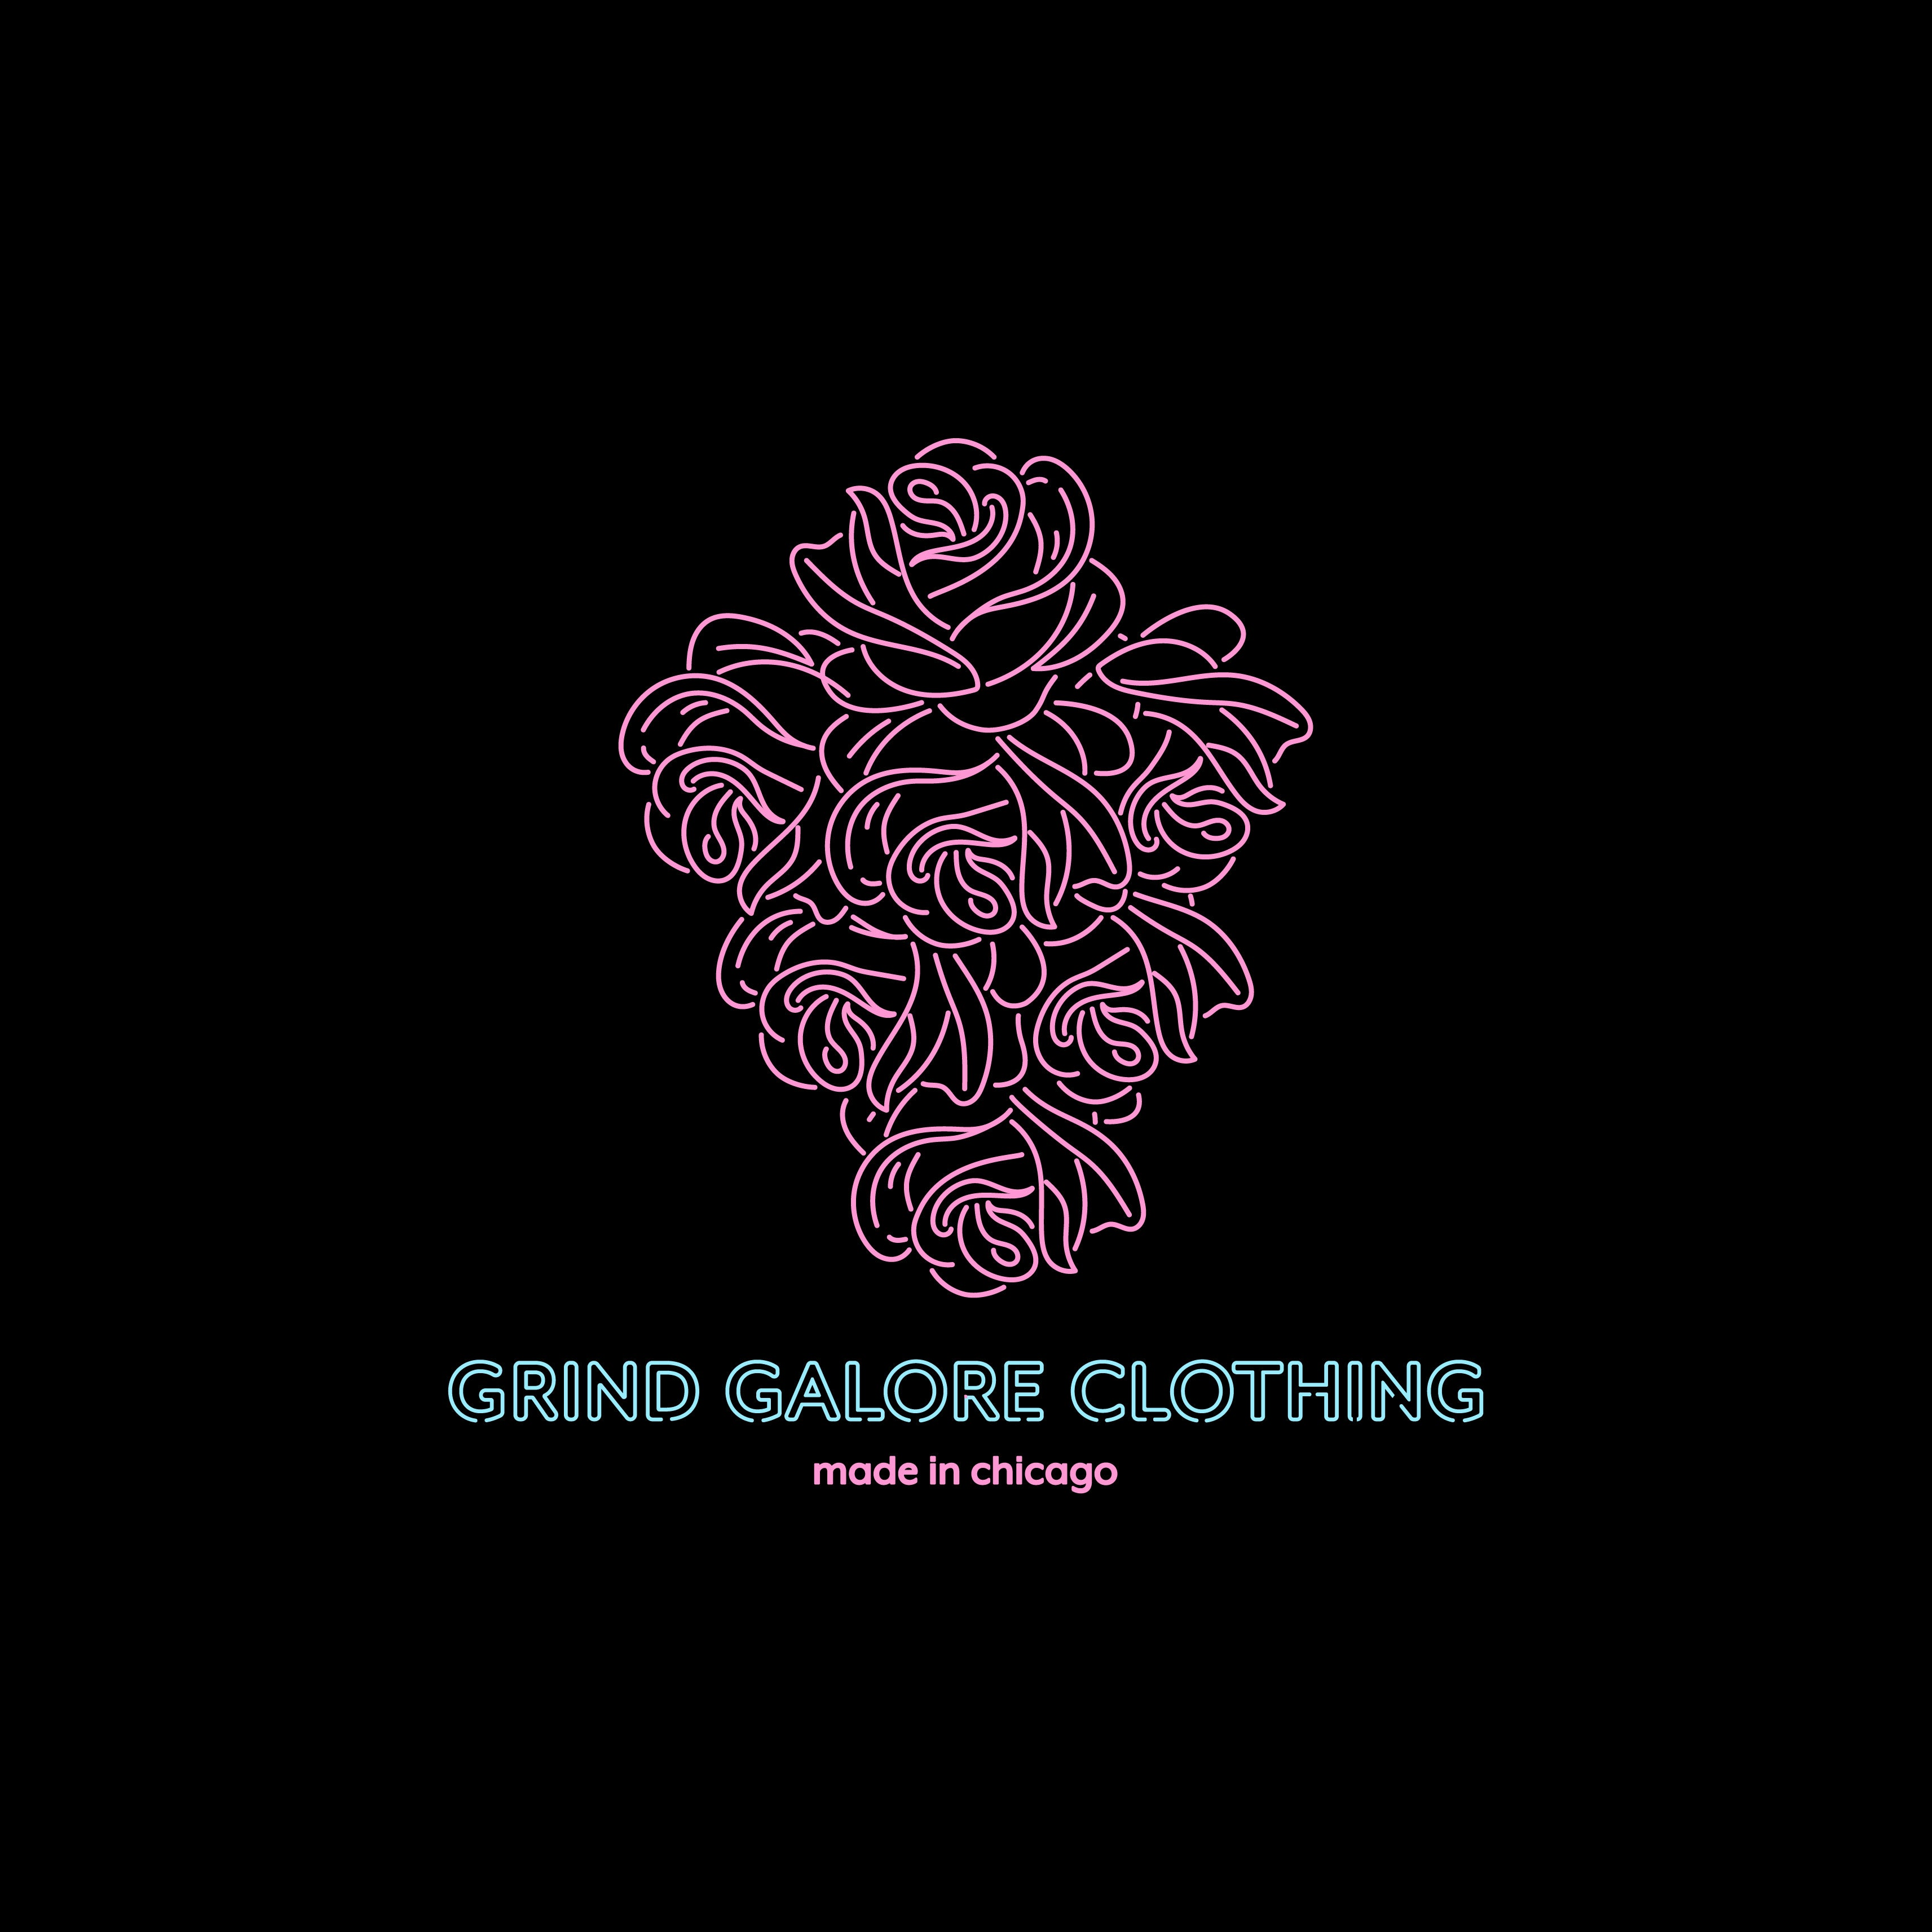 Grind Galore Clothing 's account image